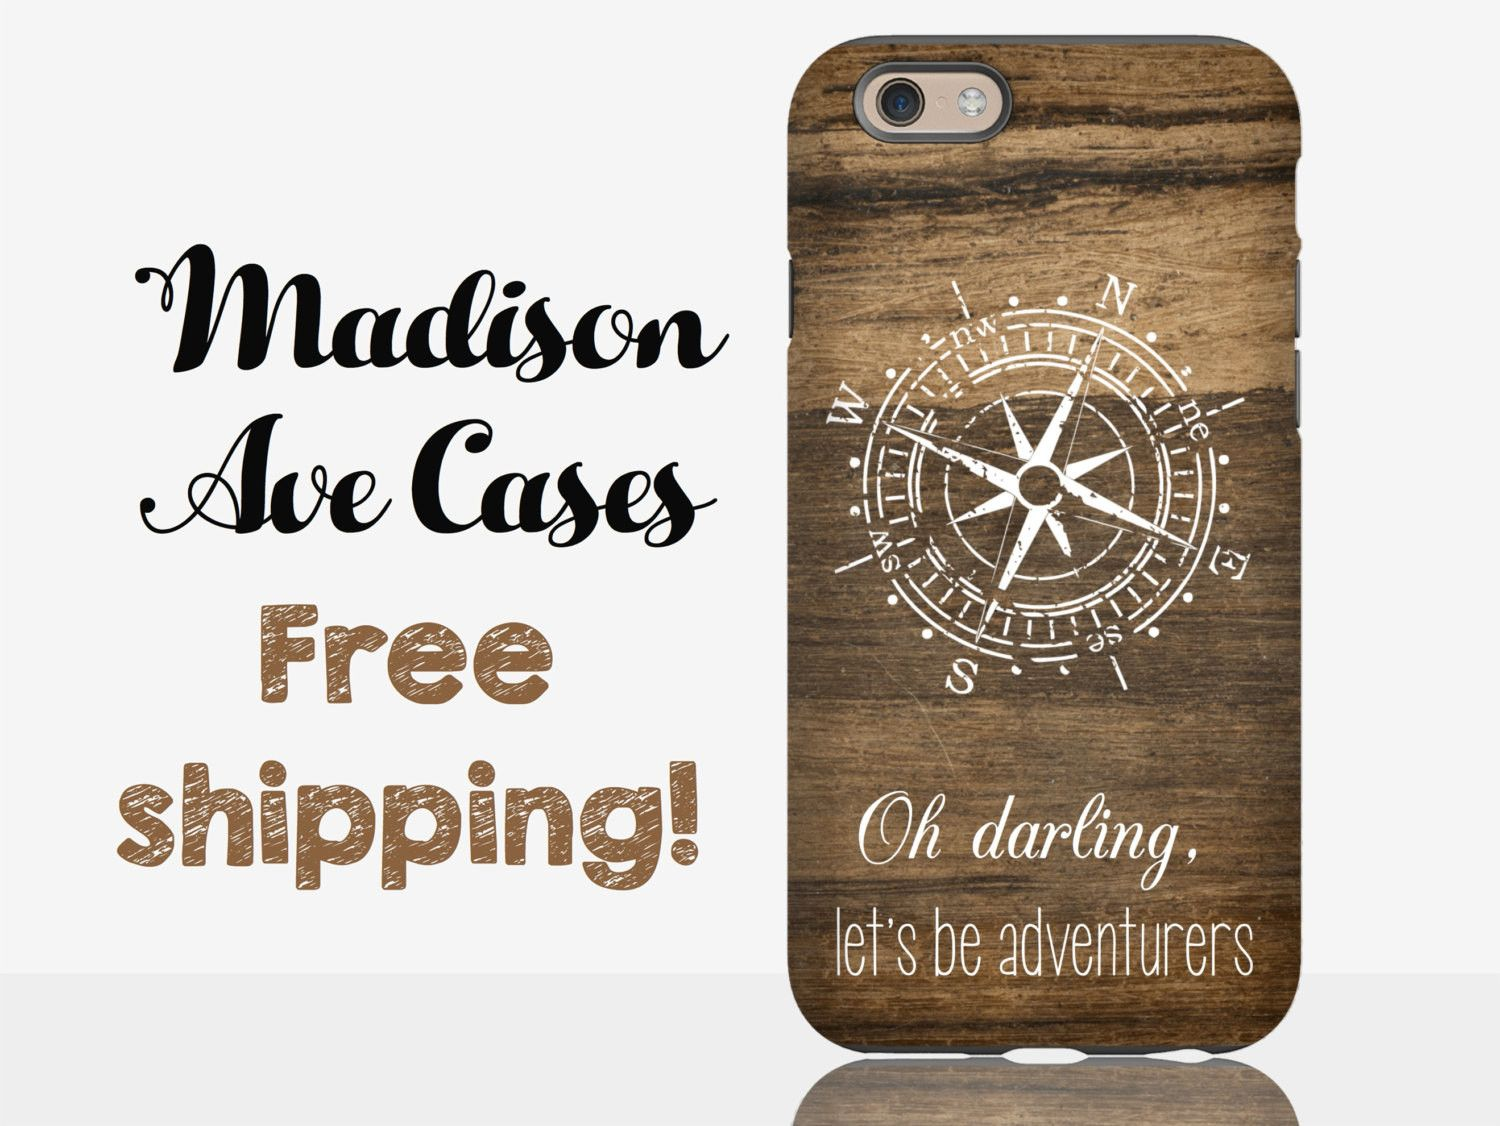 Oh Darling, Let's Be Adventurers Phone Case – Madison Ave Cases